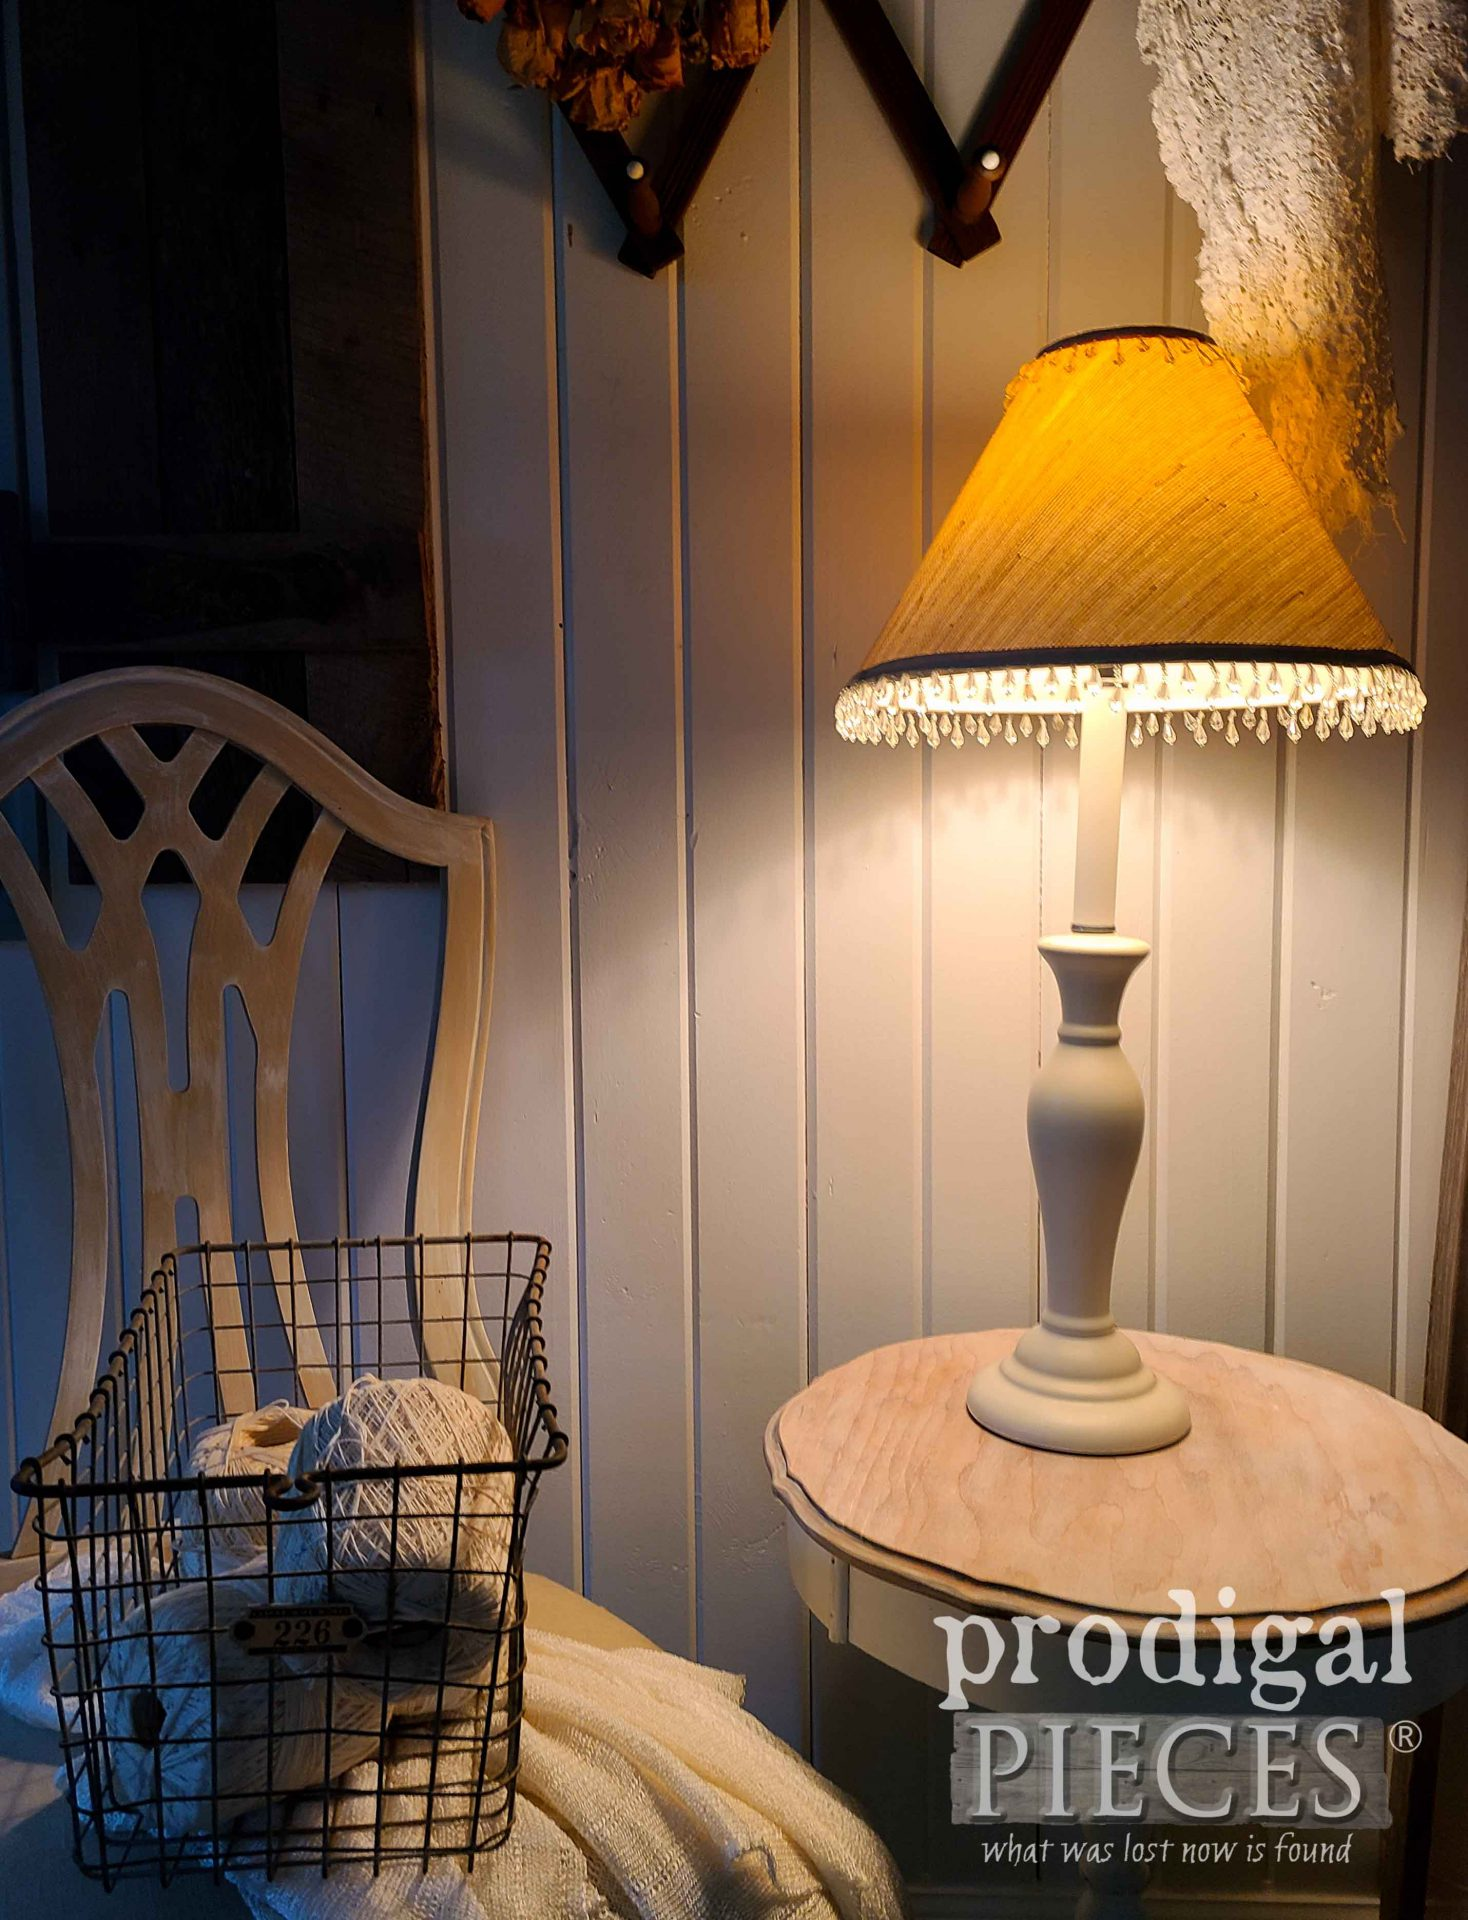 Farmhouse Chic Lamp found Curbside & Repaired by Larissa of Prodigal Pieces | prodigalpieces.com #prodigalpieces #lamp #home #farmhouse #homedecor